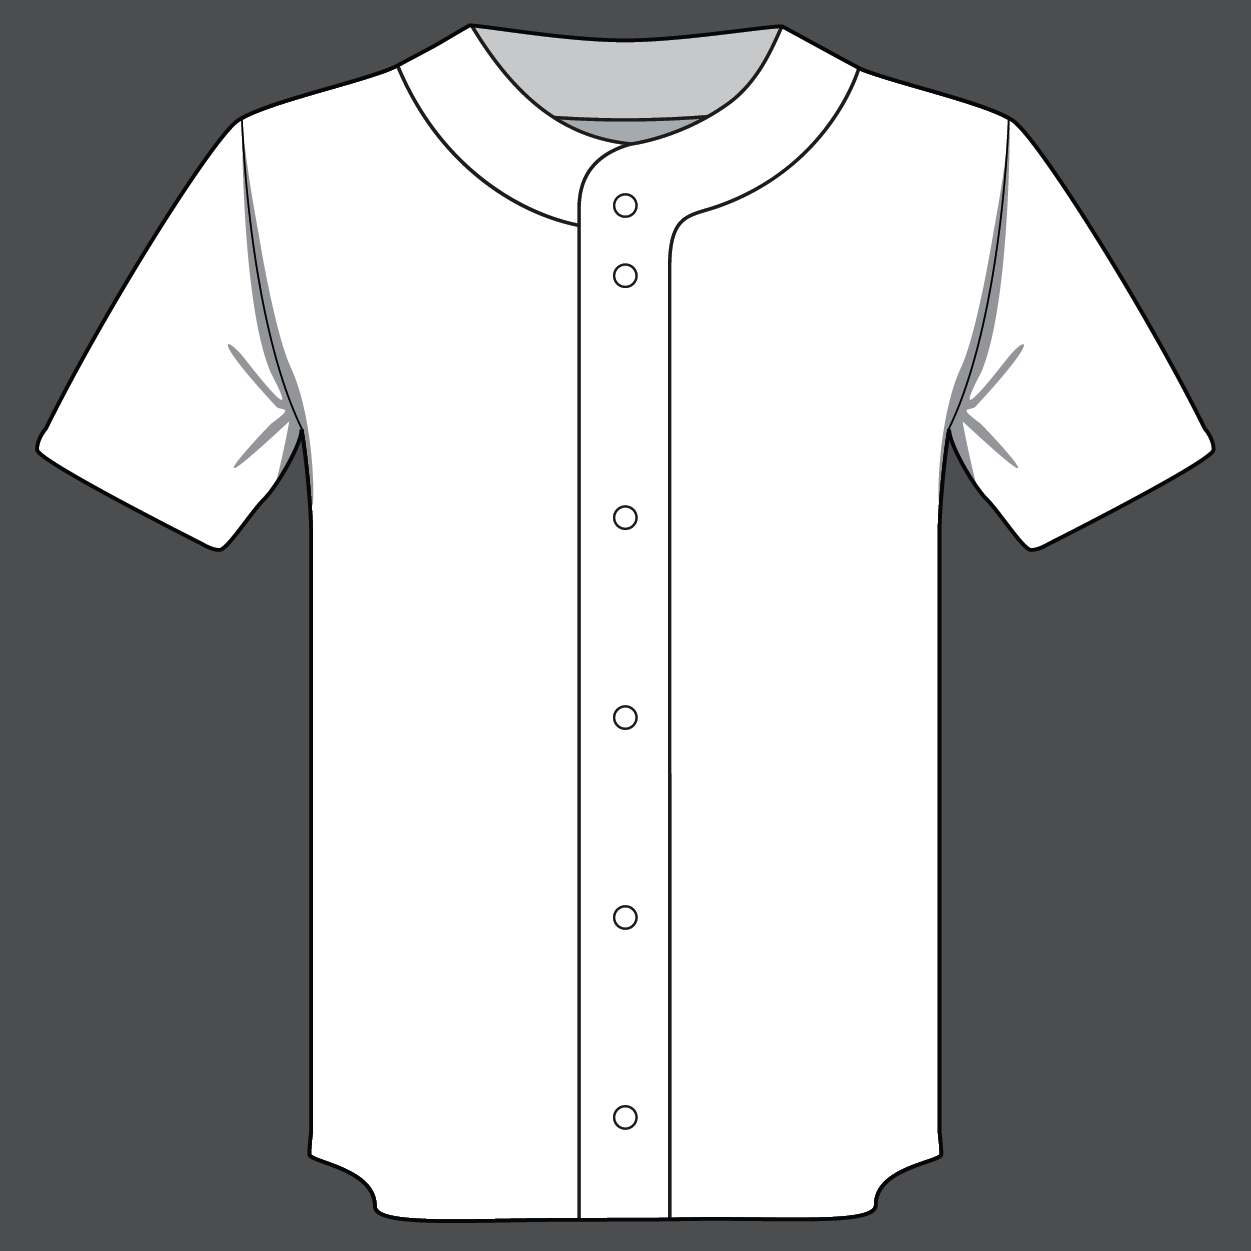 Full Button Softball Jersey - Retail Price:$69.99Team Price 12-23:$49.99Team Price 24+:$44.99Team Price 50+:Contact your Emblem Rep for a custom quoteFabric:Pinhole MeshSizes:YS, YM, YL, XS, S, M, L, XL, XXL, XXXLOptions:Custom name additional $4.99 (Custom number included)